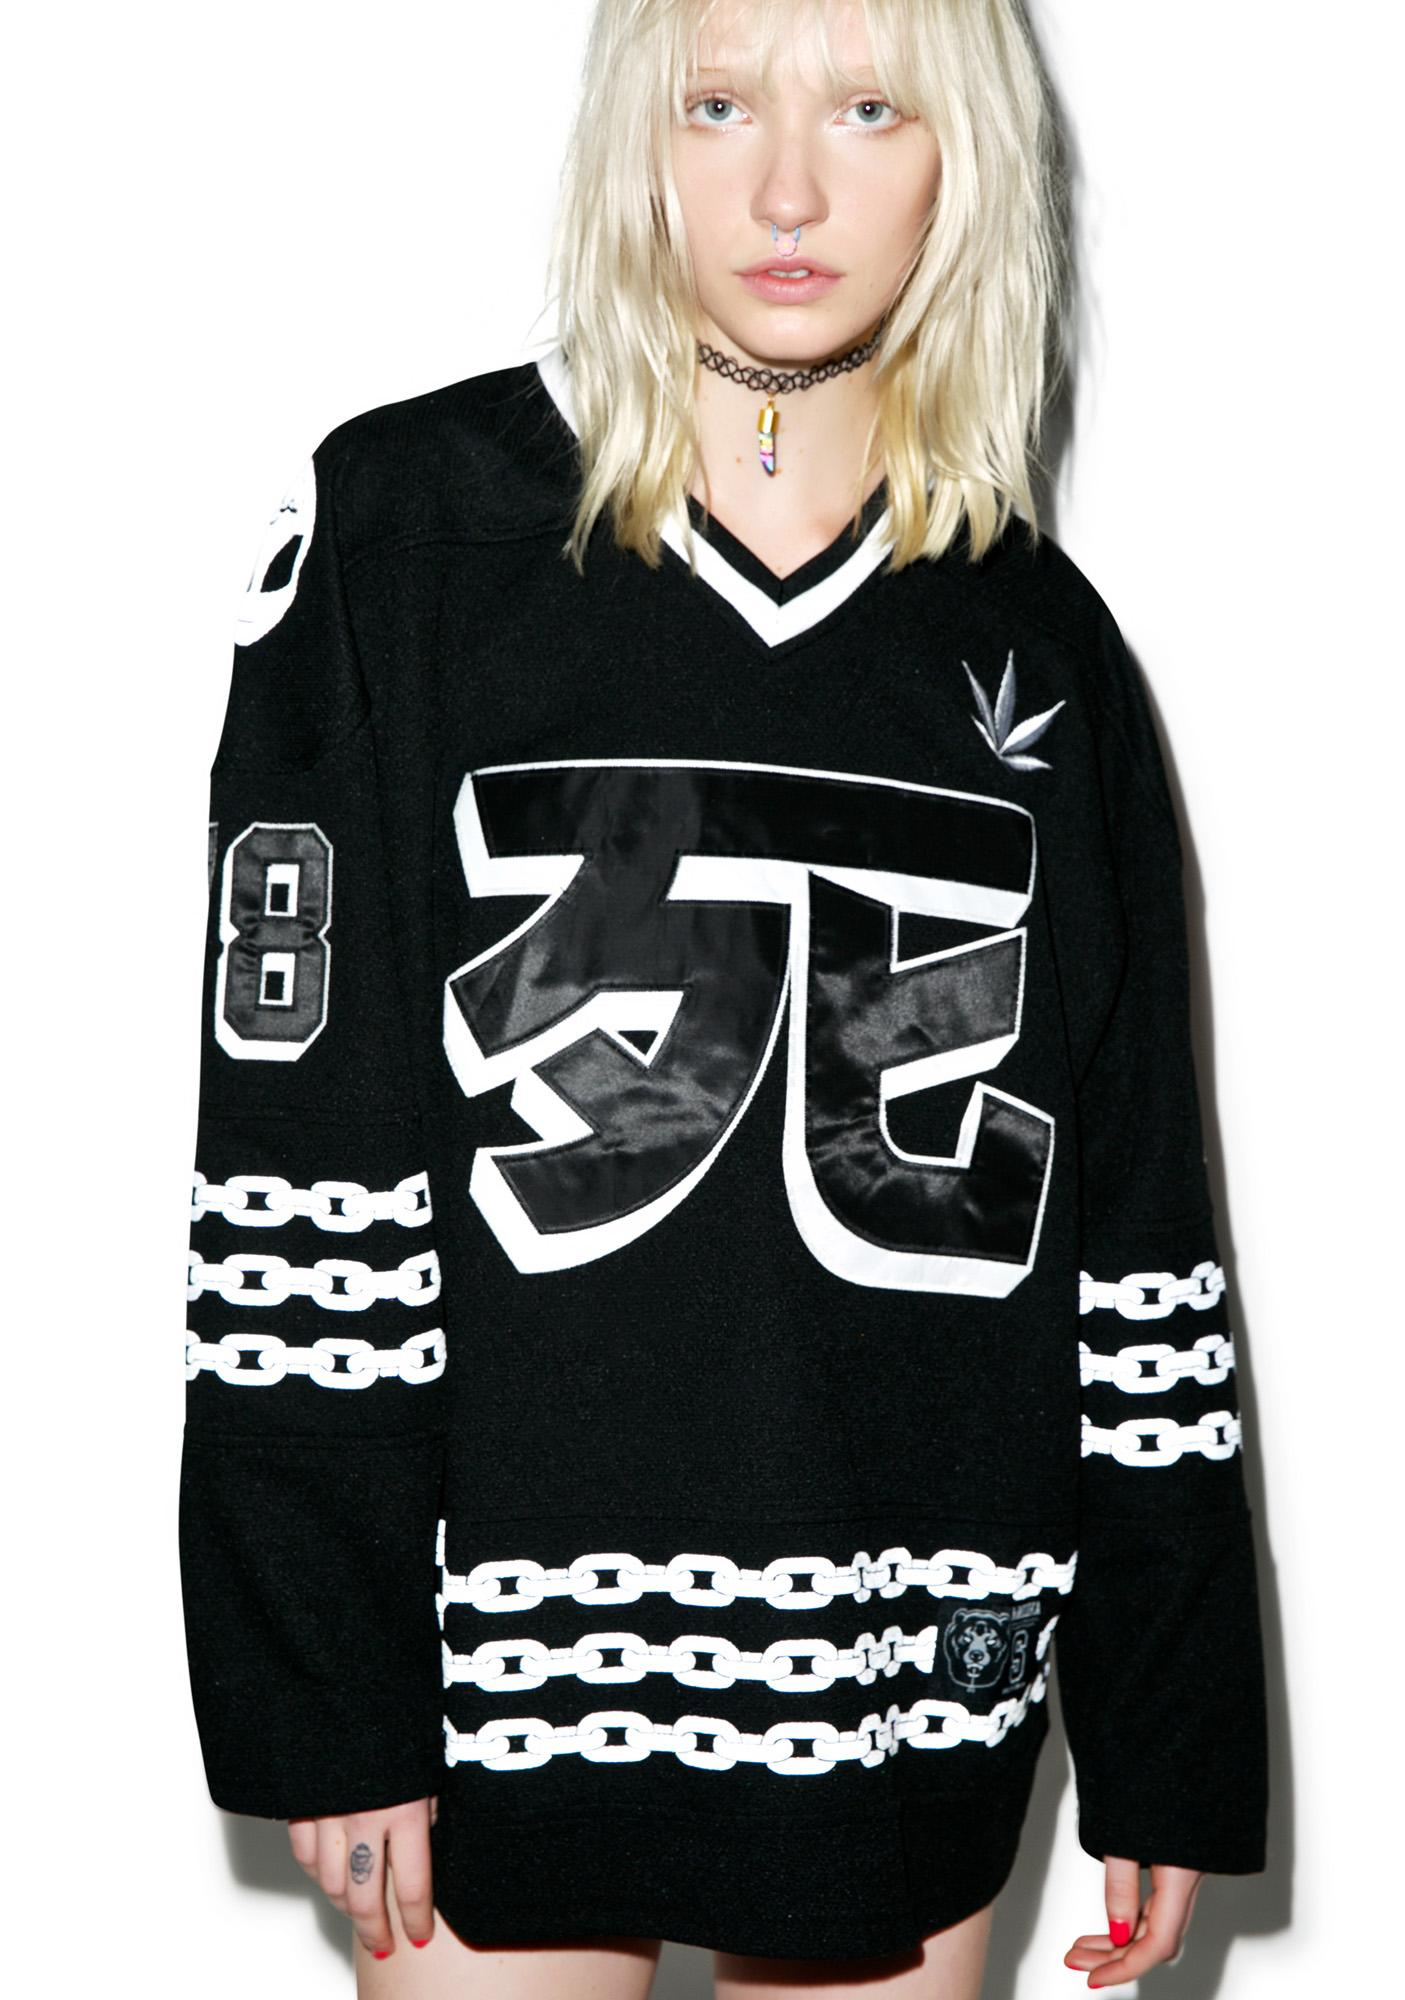 Mishka Aftershock Hockey Jersey